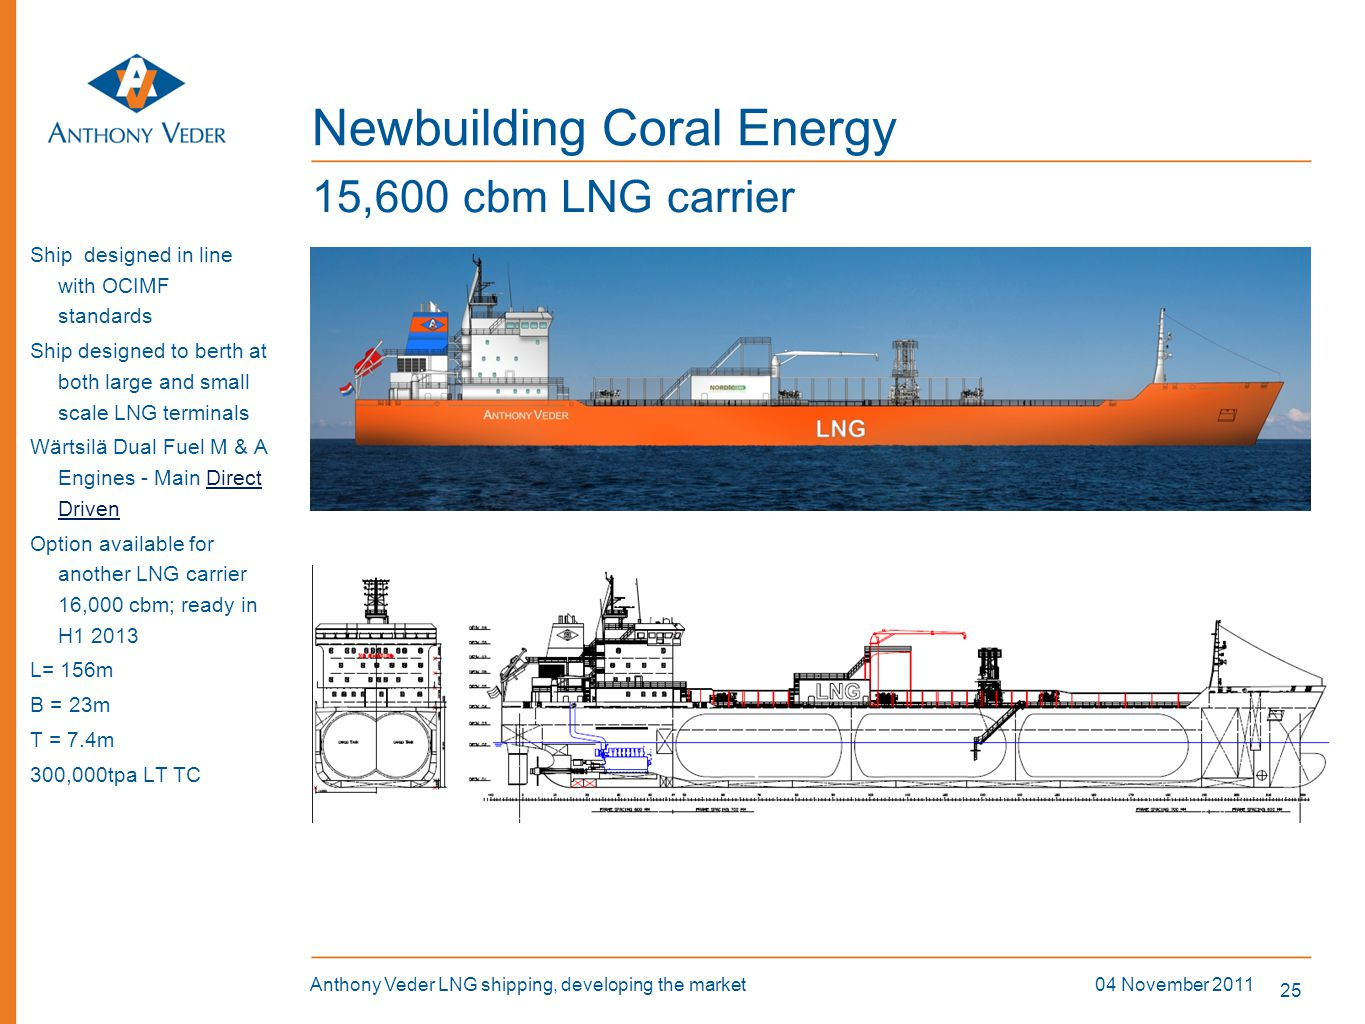 25 04 November 2011Anthony Veder LNG shipping, developing the market Newbuilding Coral Energy Ship designed in line with OCIMF standards Ship designed